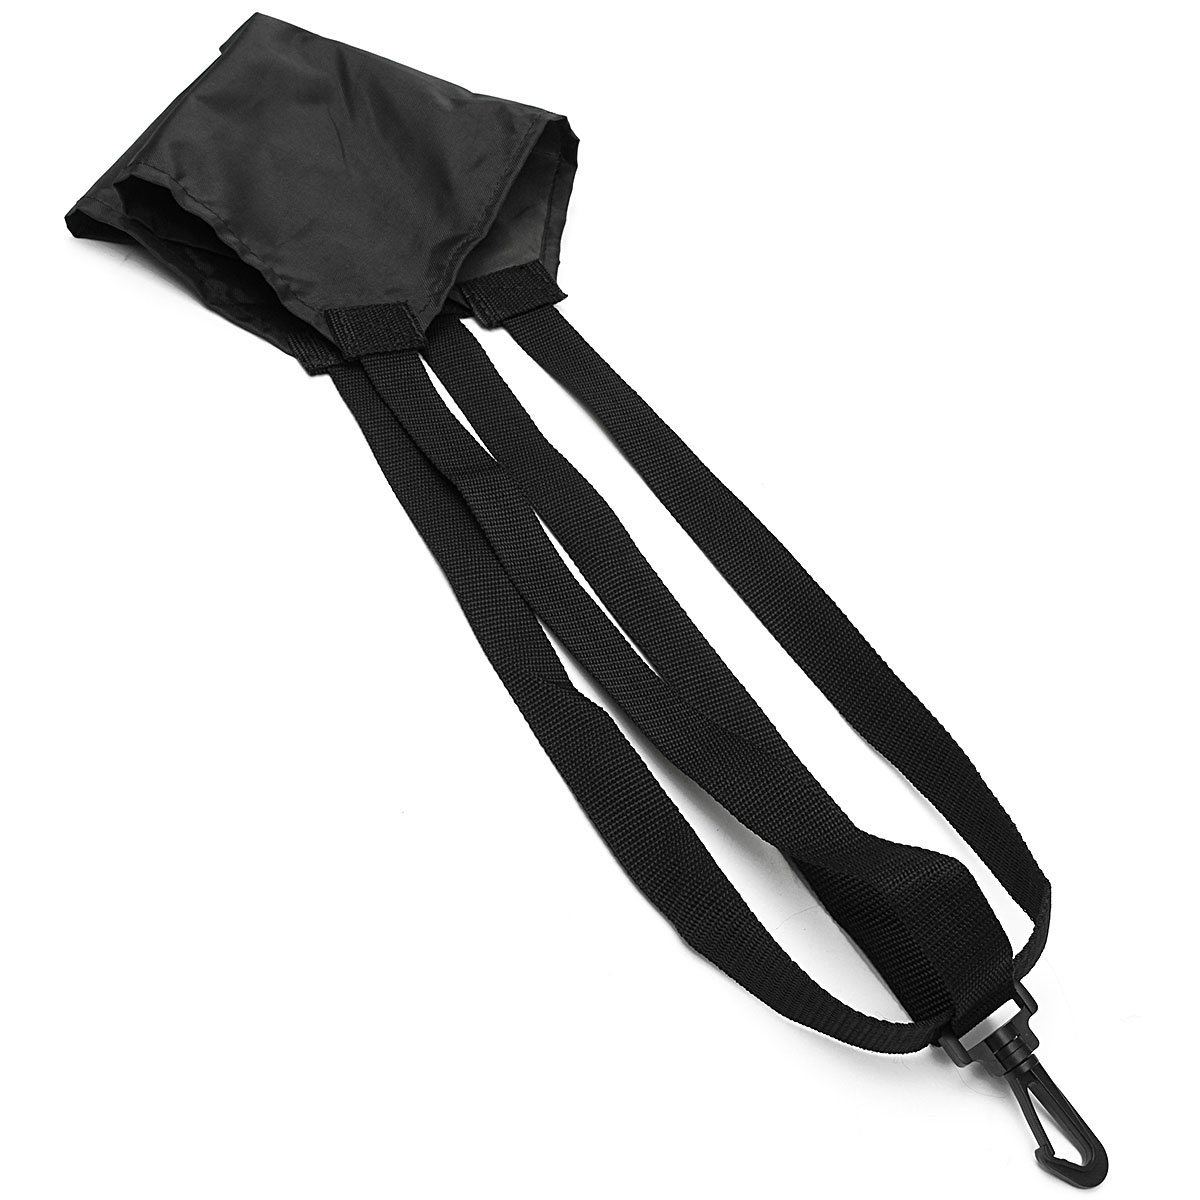 Water Swim Training Drag Belt Strap